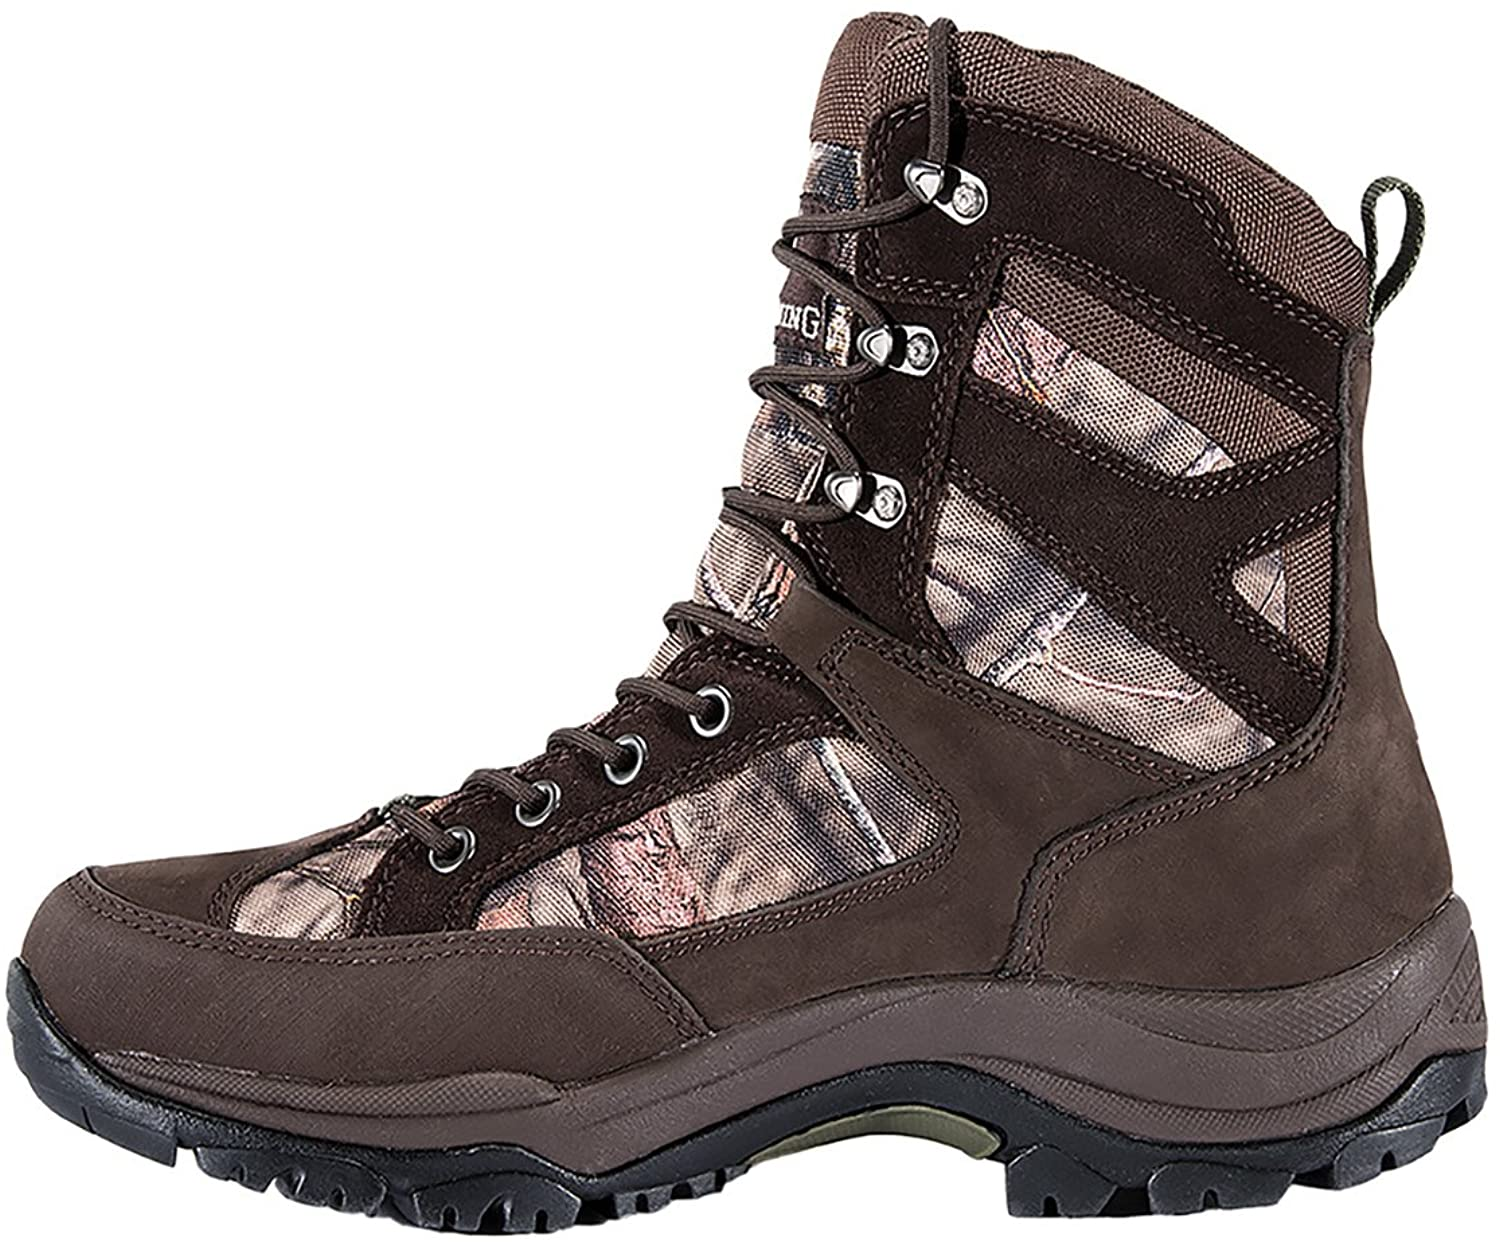 Browning Mens Buck Pursuit 8in Oxford Hunting Boots - 400g, Bracken/Mossy Oak F000005620238